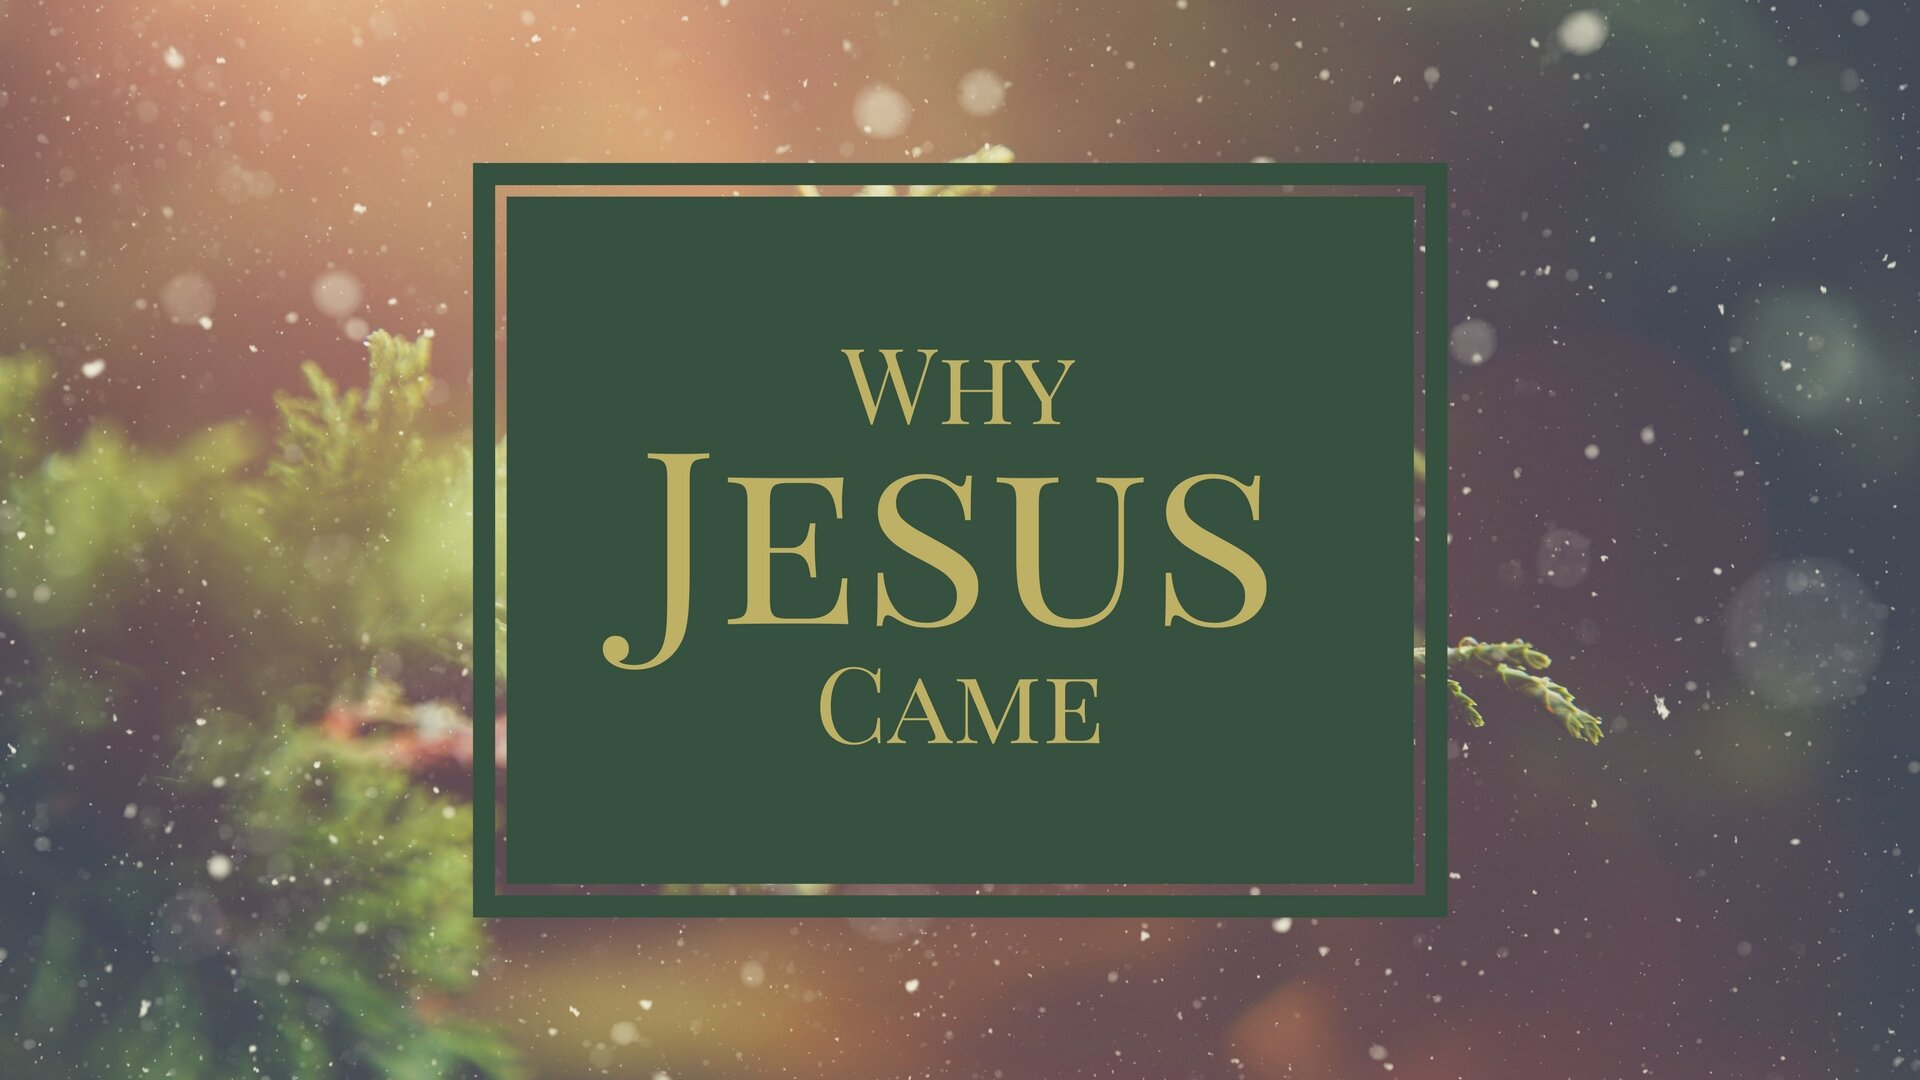 WhyJesusCame-HD.jpg